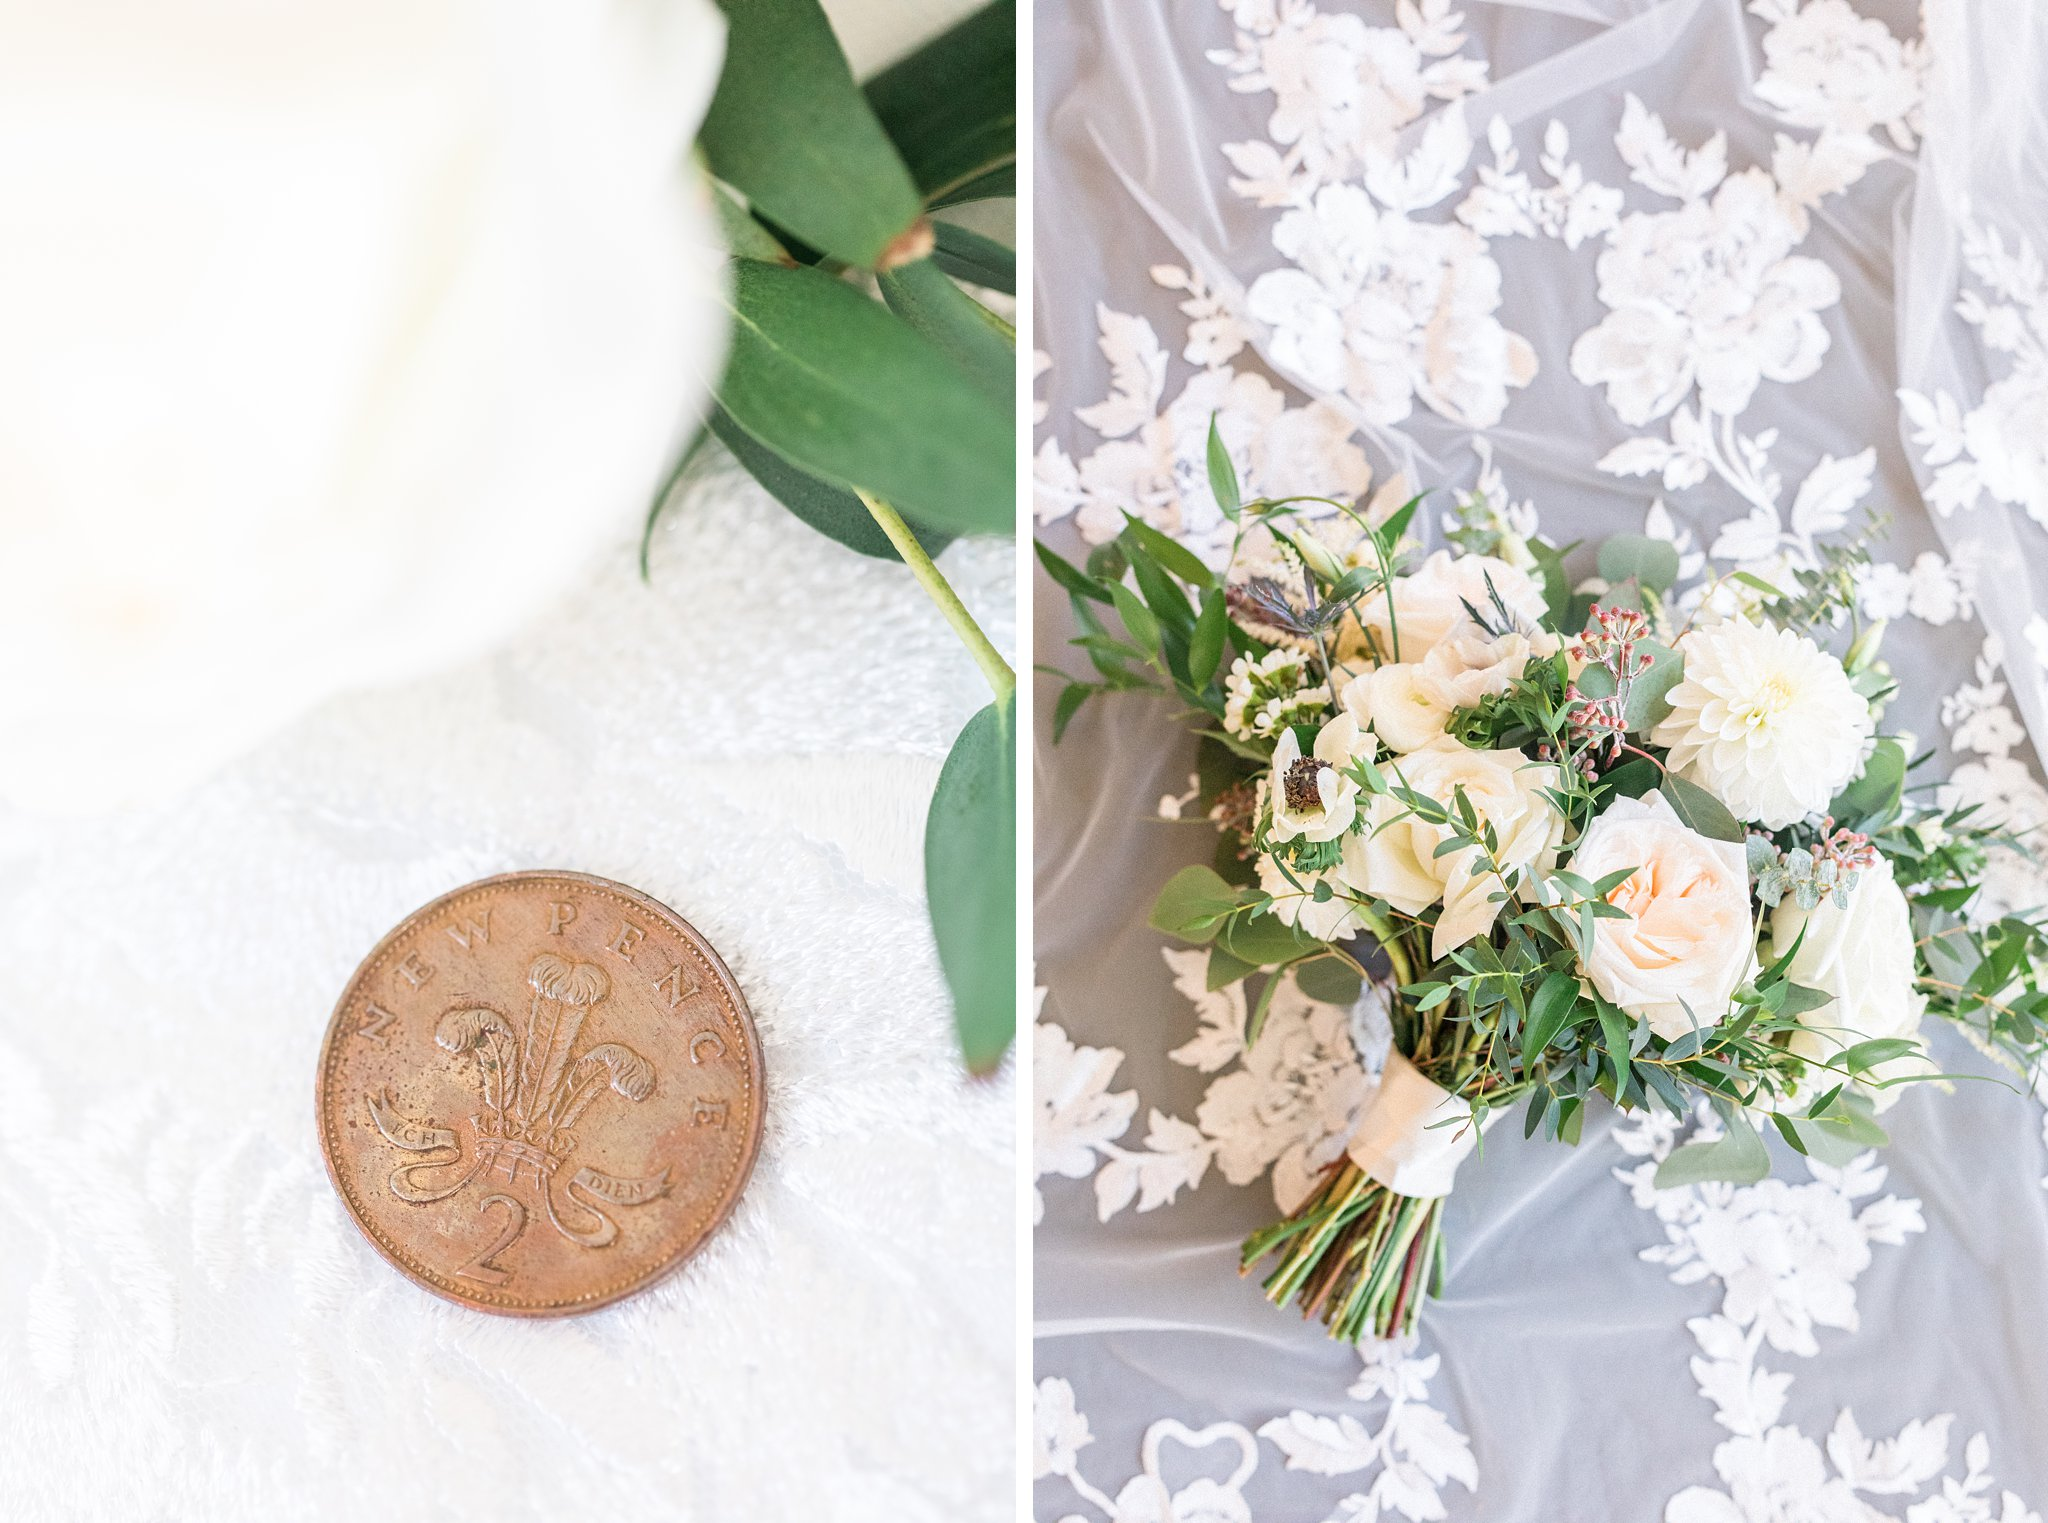 Lucky penny new pence coin, Opinicon Wedding Photos by Amy Pinder Photography